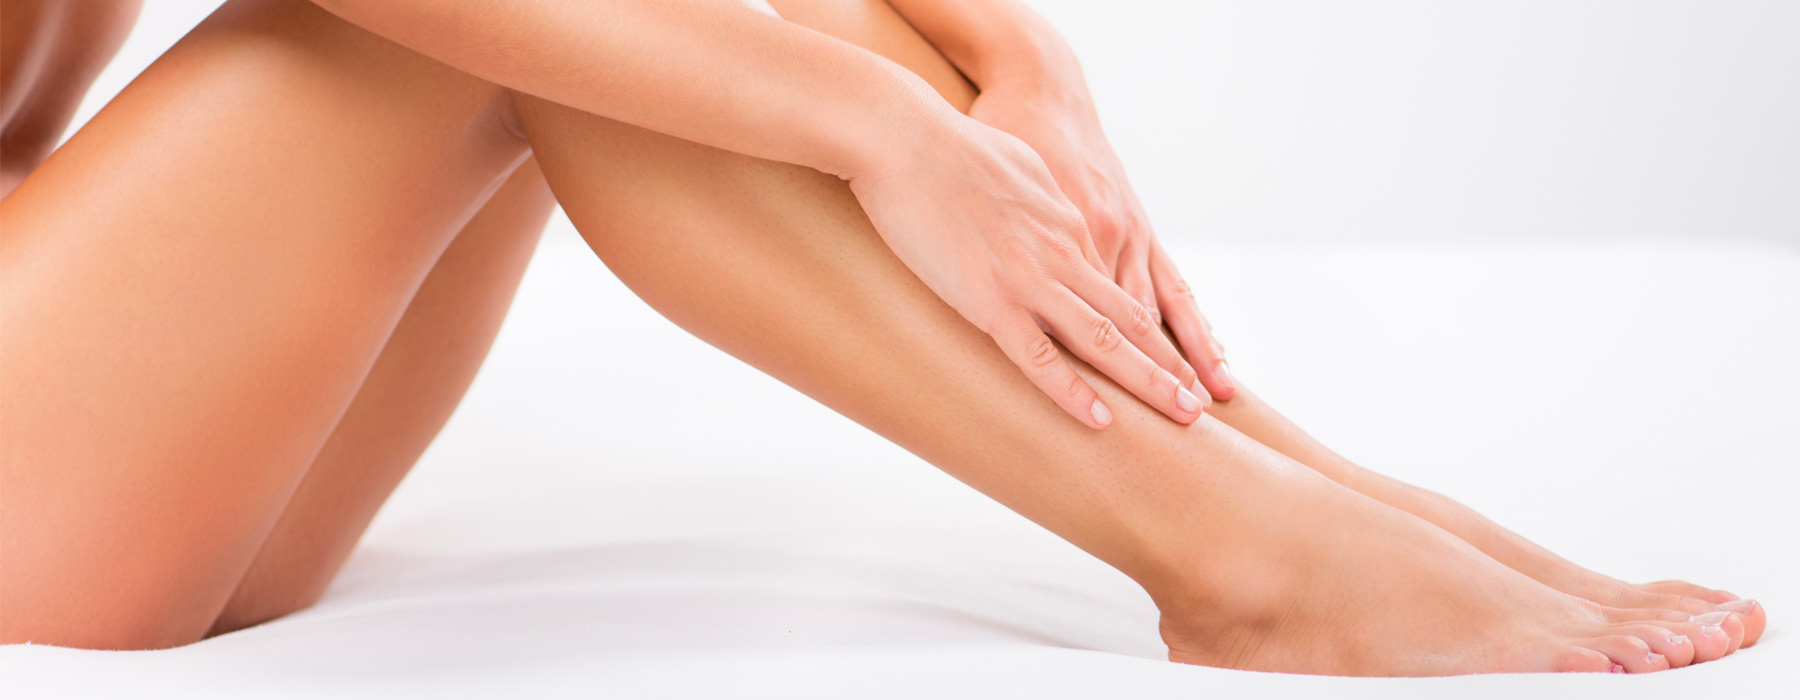 Hair Removal and Waxing Treatment Options using Lycojet Hot Wax